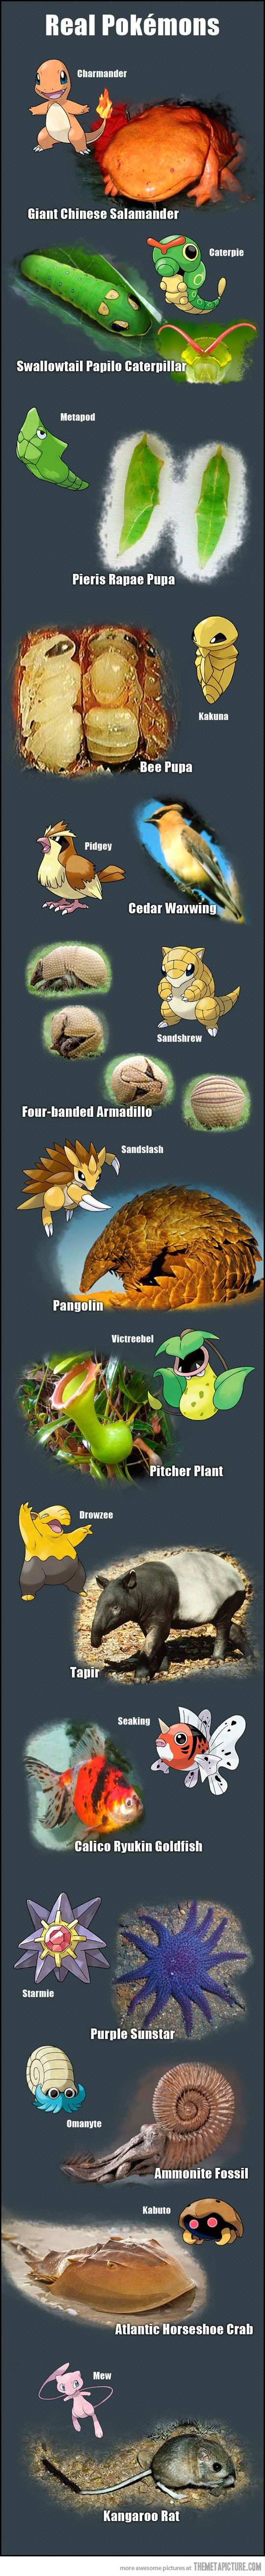 That's how they created Pokemon, using real life animals as inspiration. Mind blown!